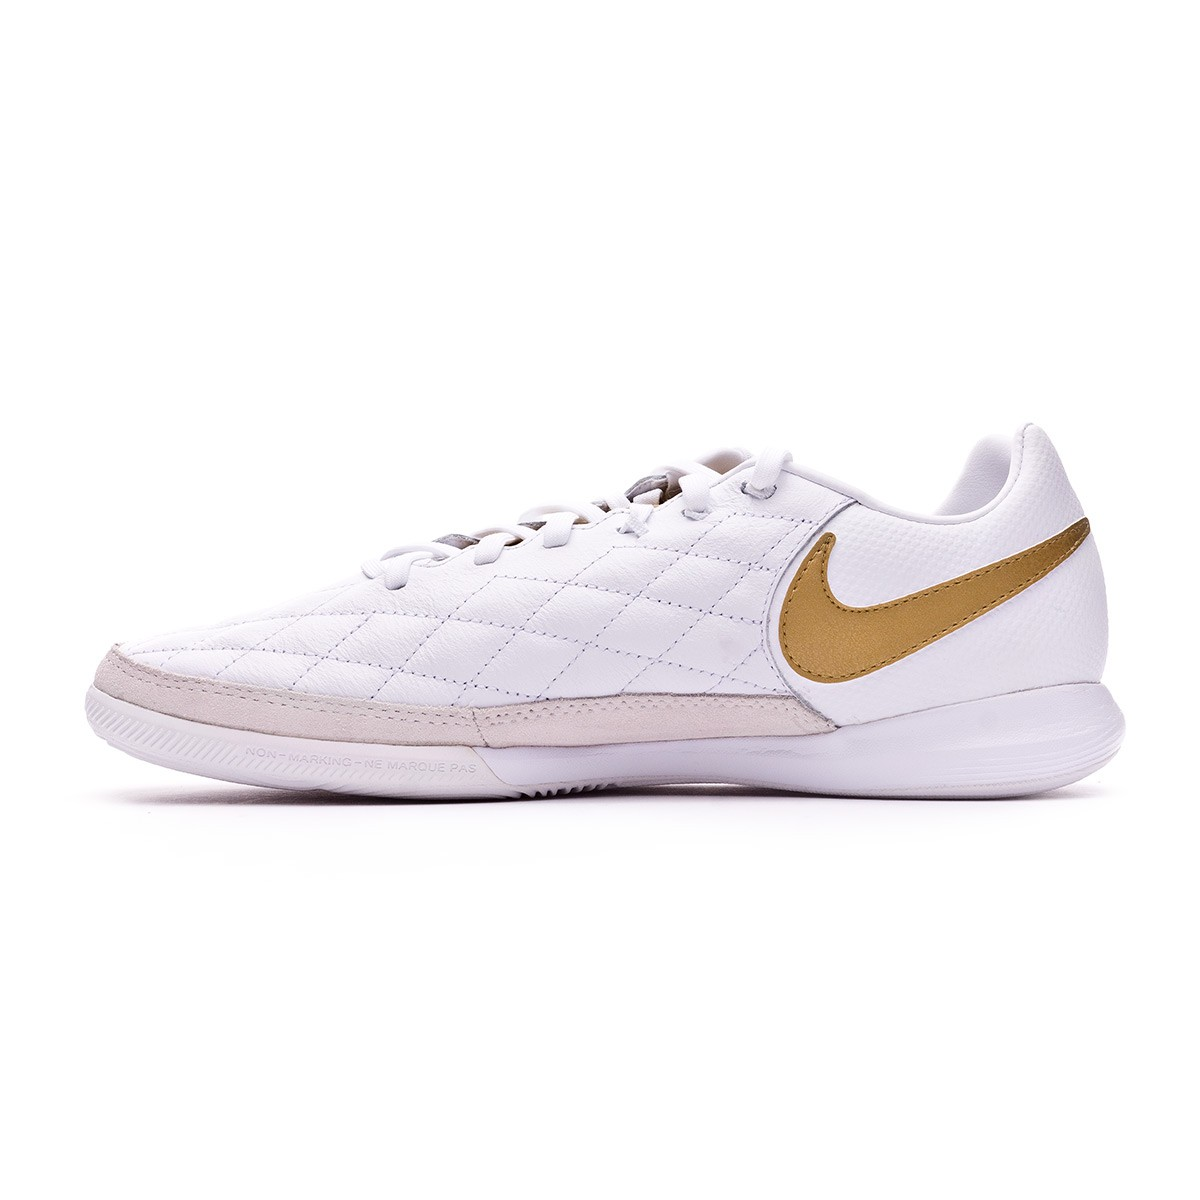 a1b4078a5386 Futsal Boot Nike Lunar LegendX VII Pro 10R Barcelona IC White-Metallic gold- White - Tienda de fútbol Fútbol Emotion